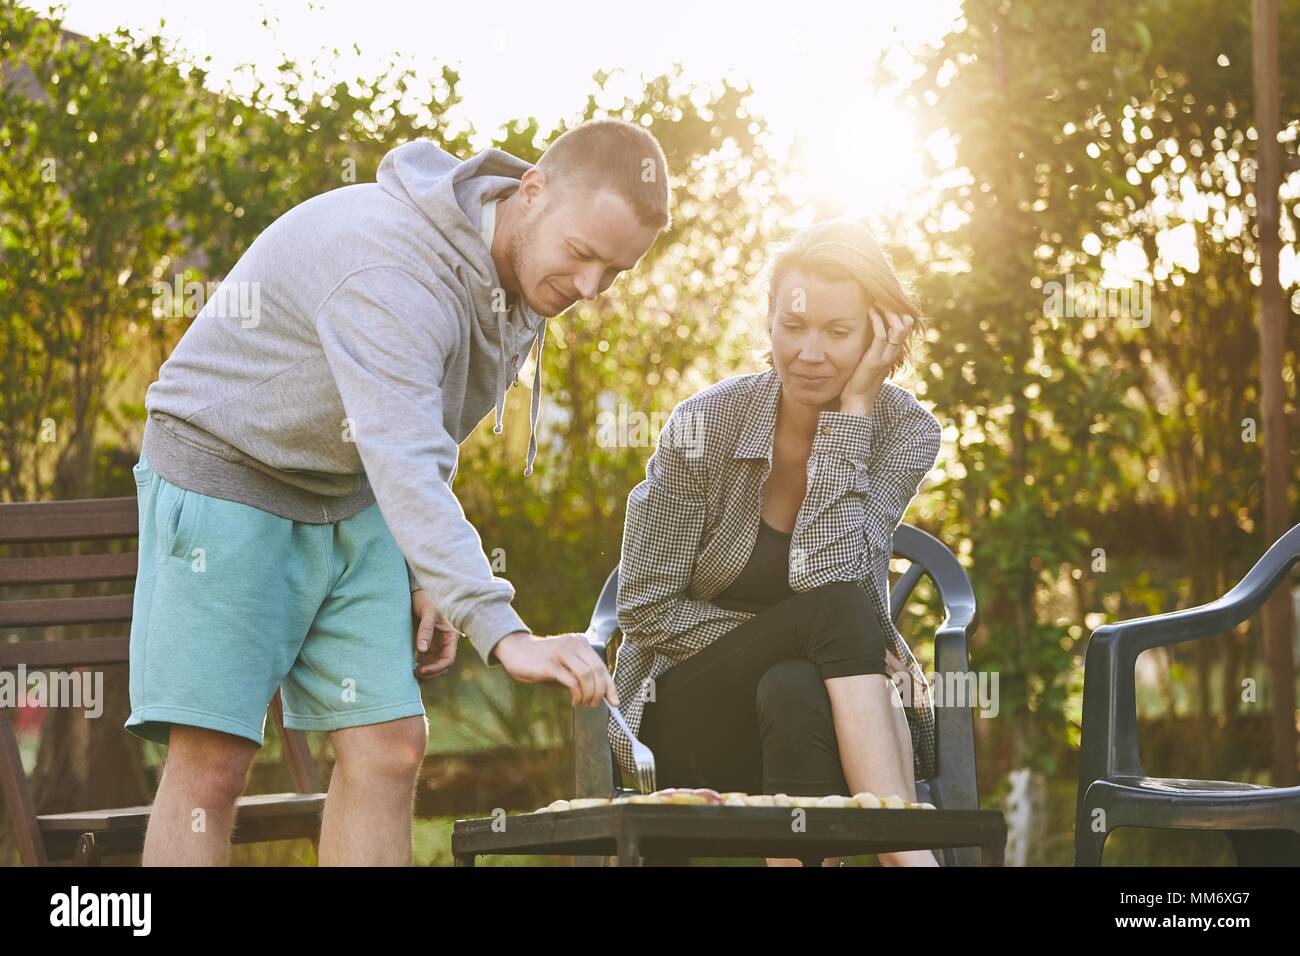 Summertime on the garden. Young couple barbecuing against chalet at the sunset. - Stock Image